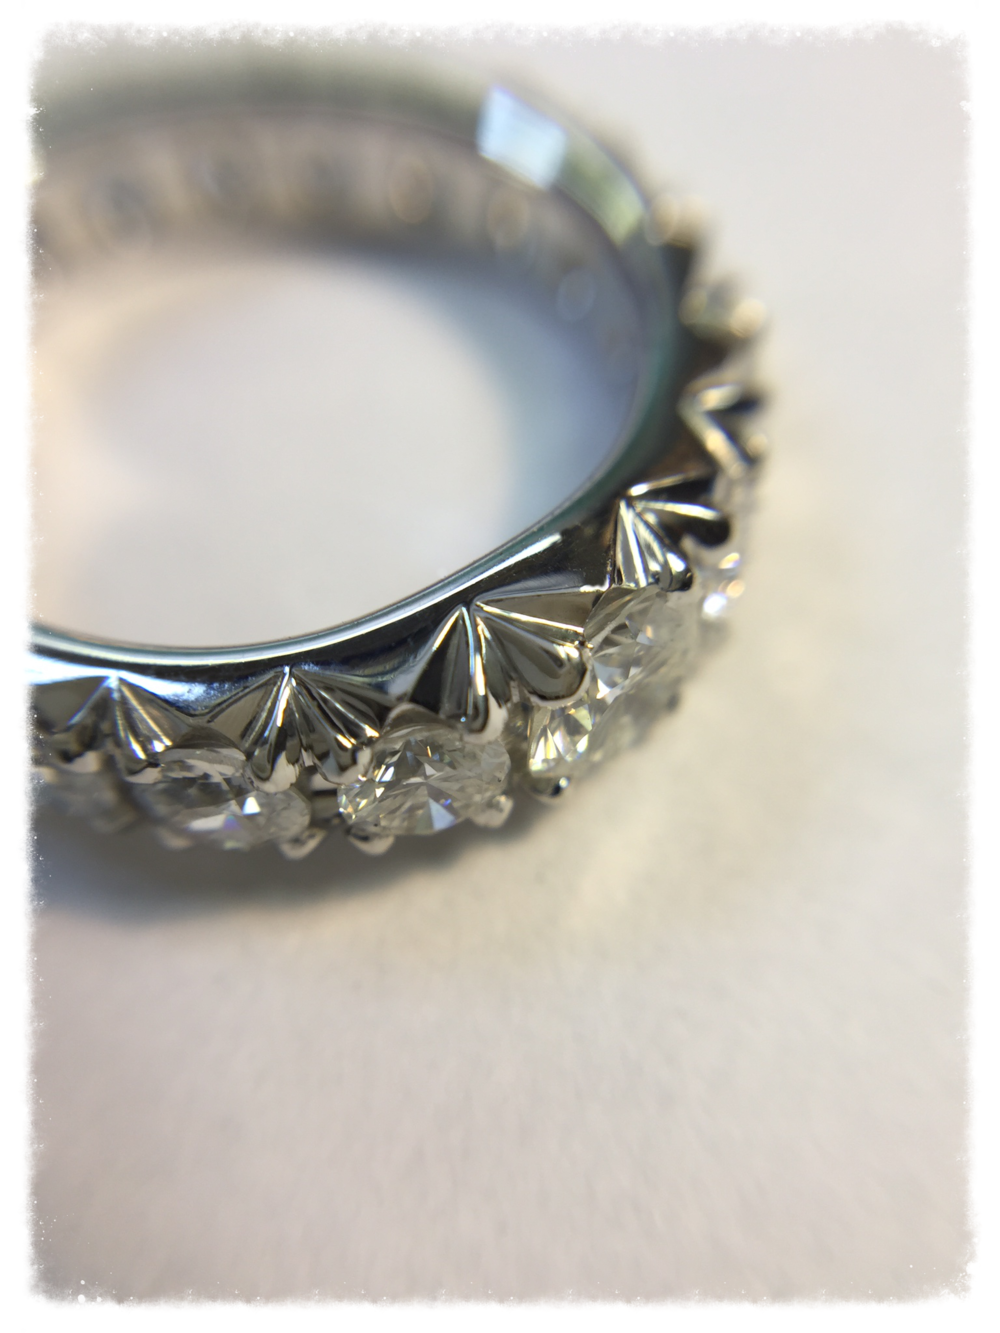 The finished French-cut pavé ring!